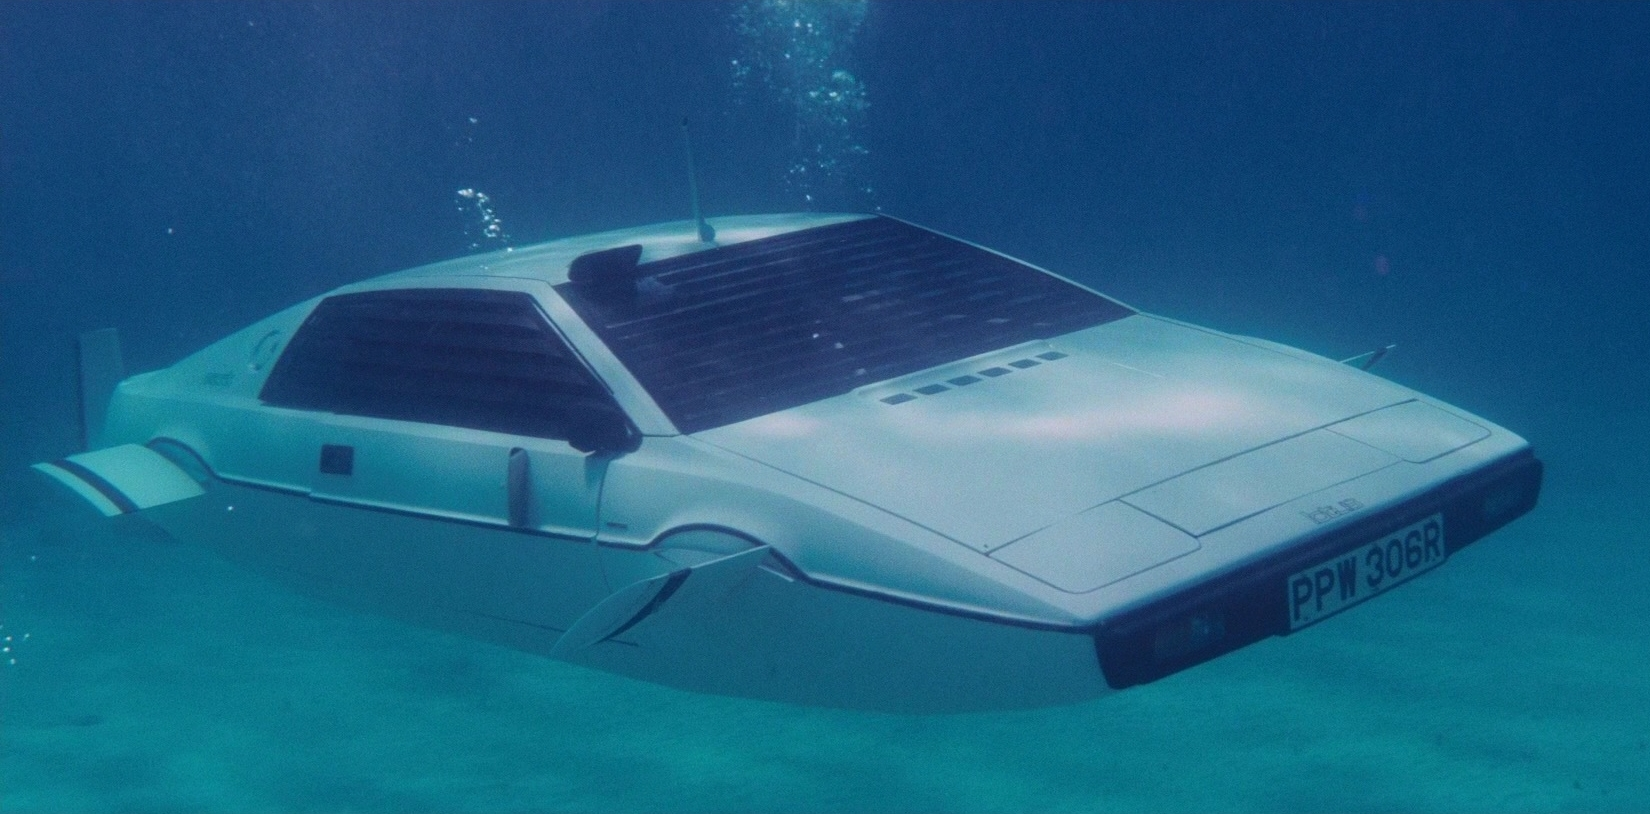 Image Lotus Esprit S1 Submarine Jpg James Bond 007 Wiki